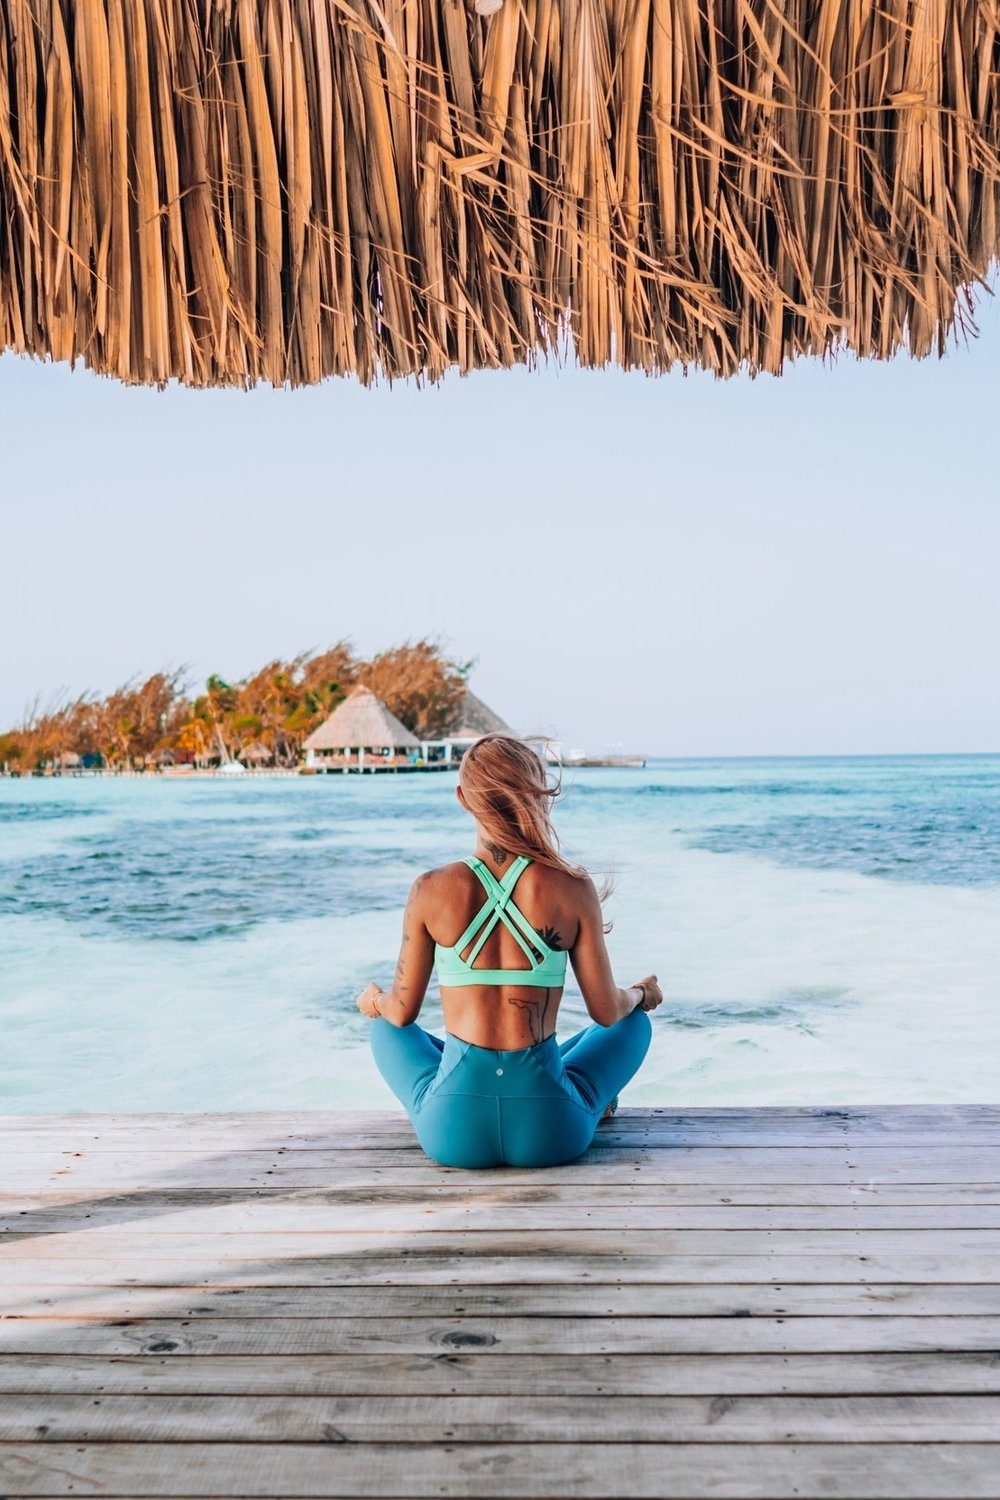 Yoga Retreats - Reconnect with yourself while you disconnect from the outside world.